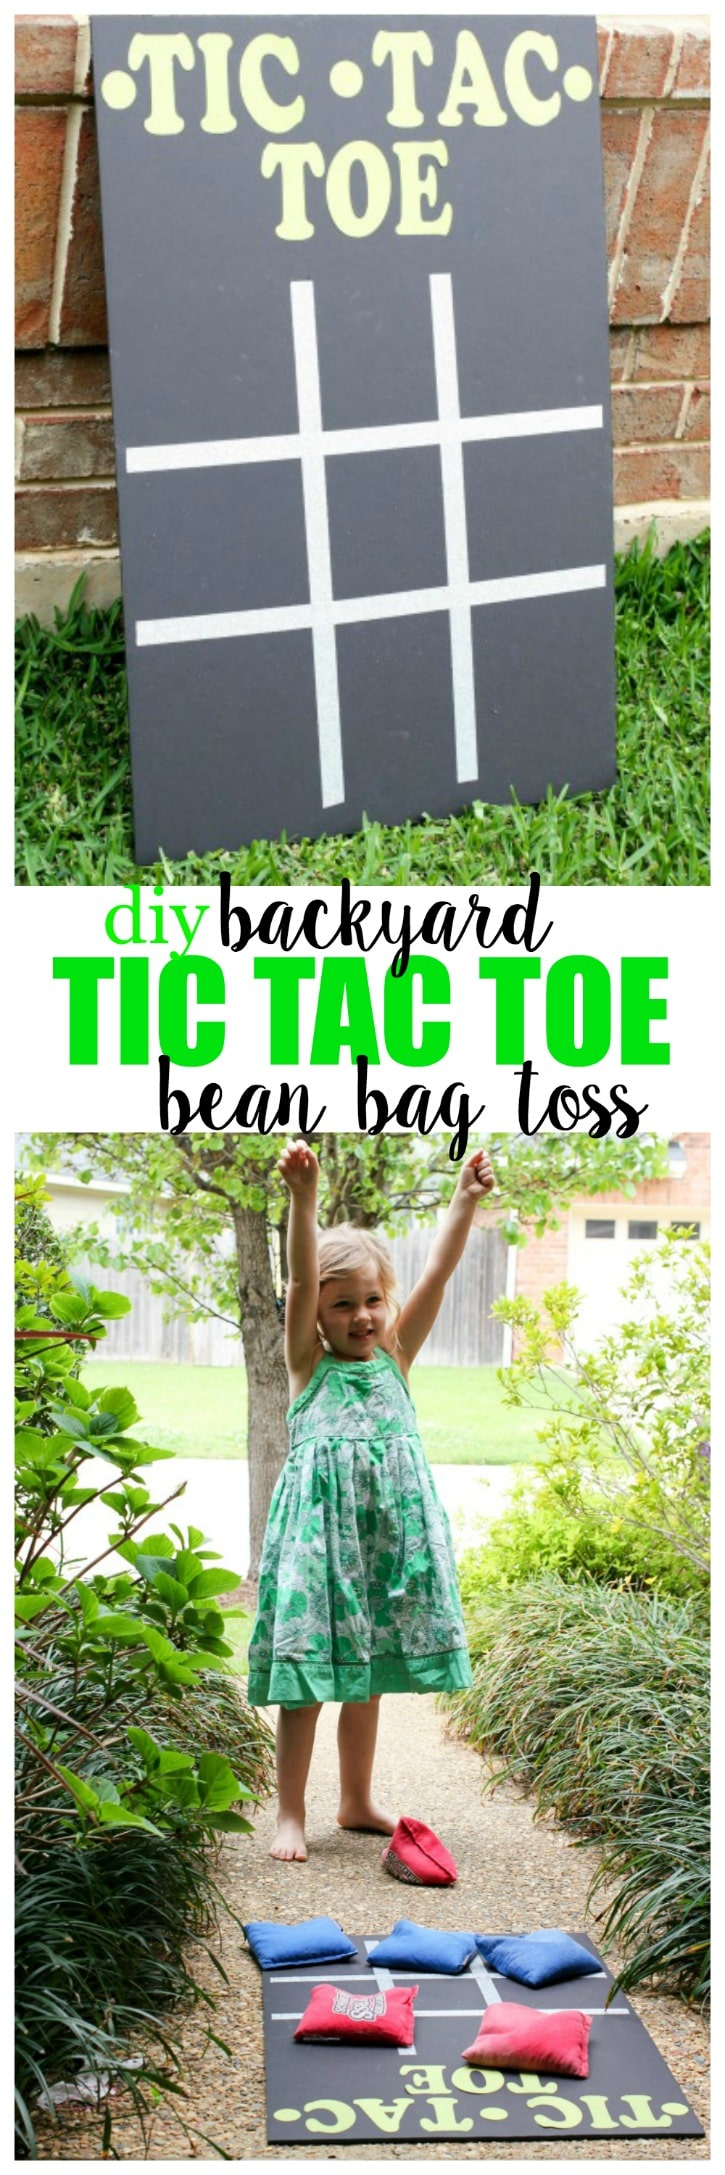 http://www.pinkwhen.com/wp-content/uploads/2016/06/Backyard-Tic-Tac-Toe-Bean-Bag-Toss-collage.jpg